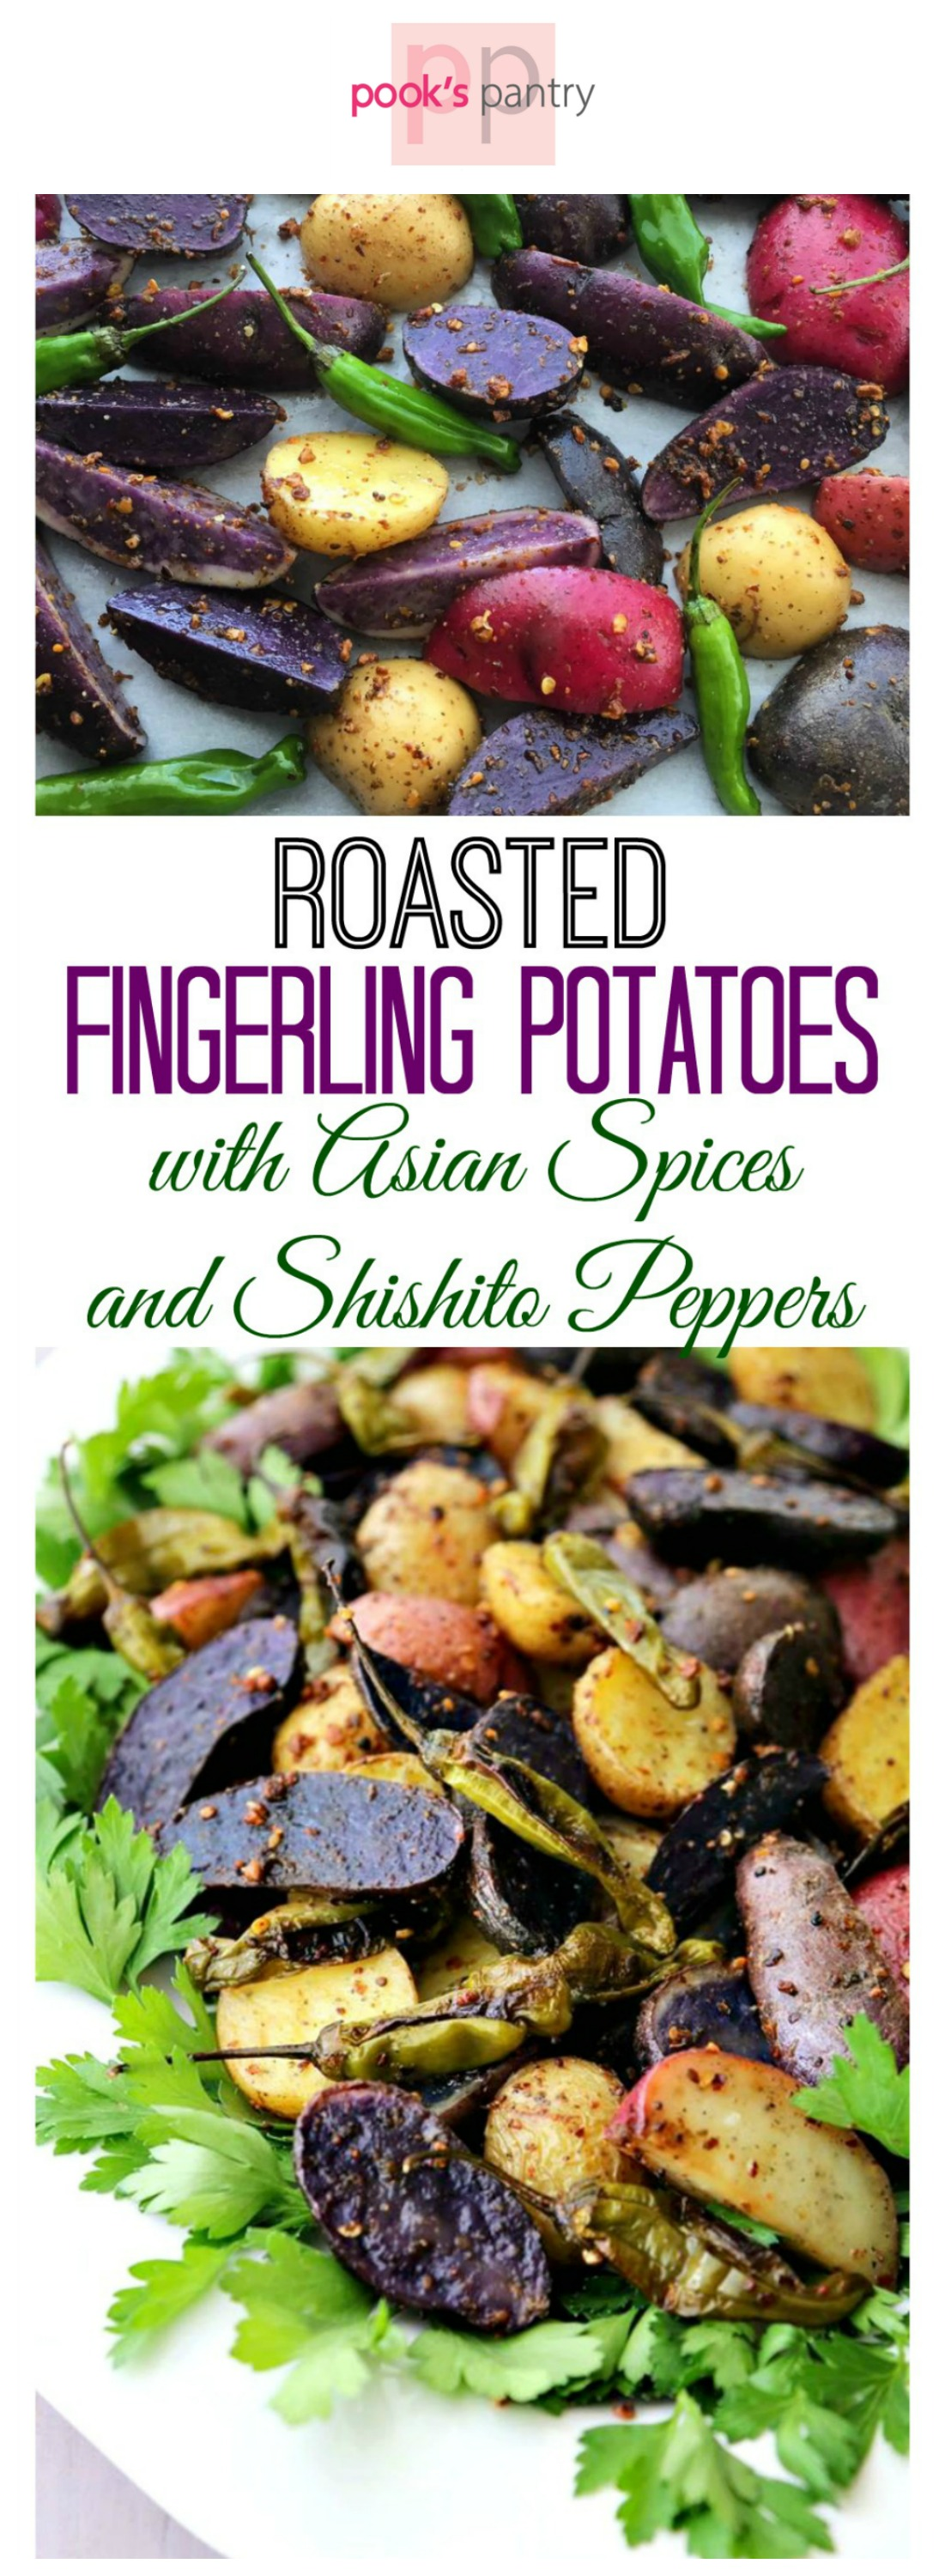 roasted-fingerlings-and-shishito-peppers